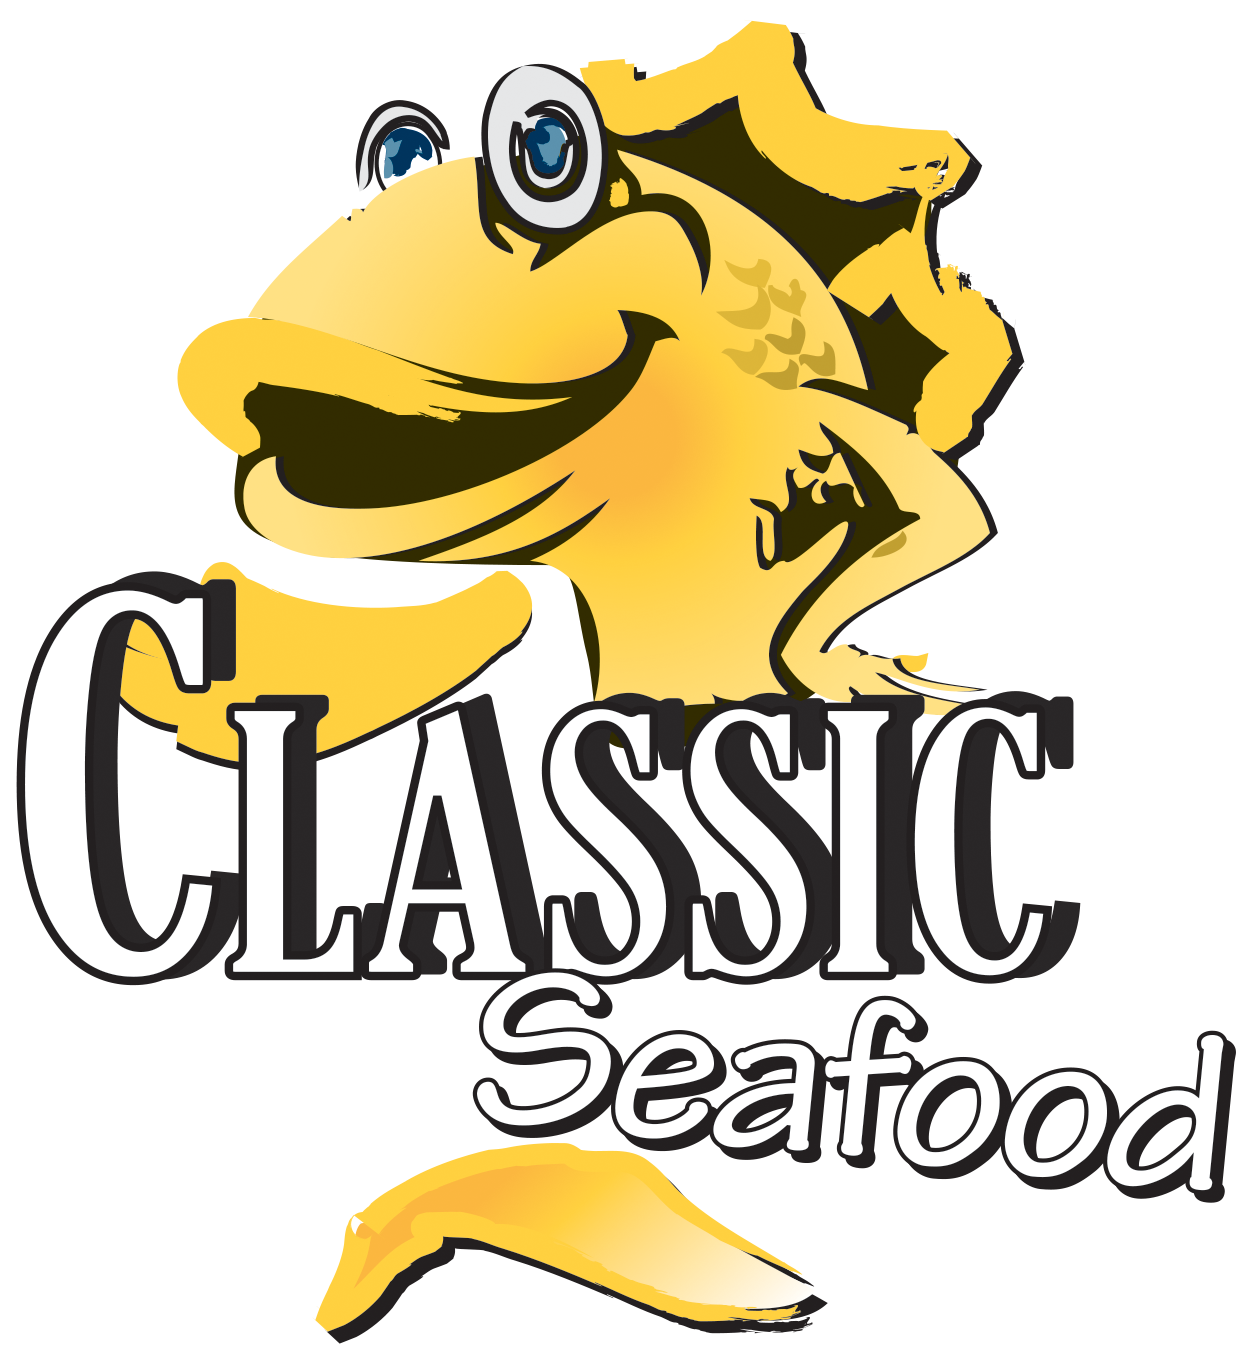 Shellfish classic seafood market. Shell clipart clam chowder